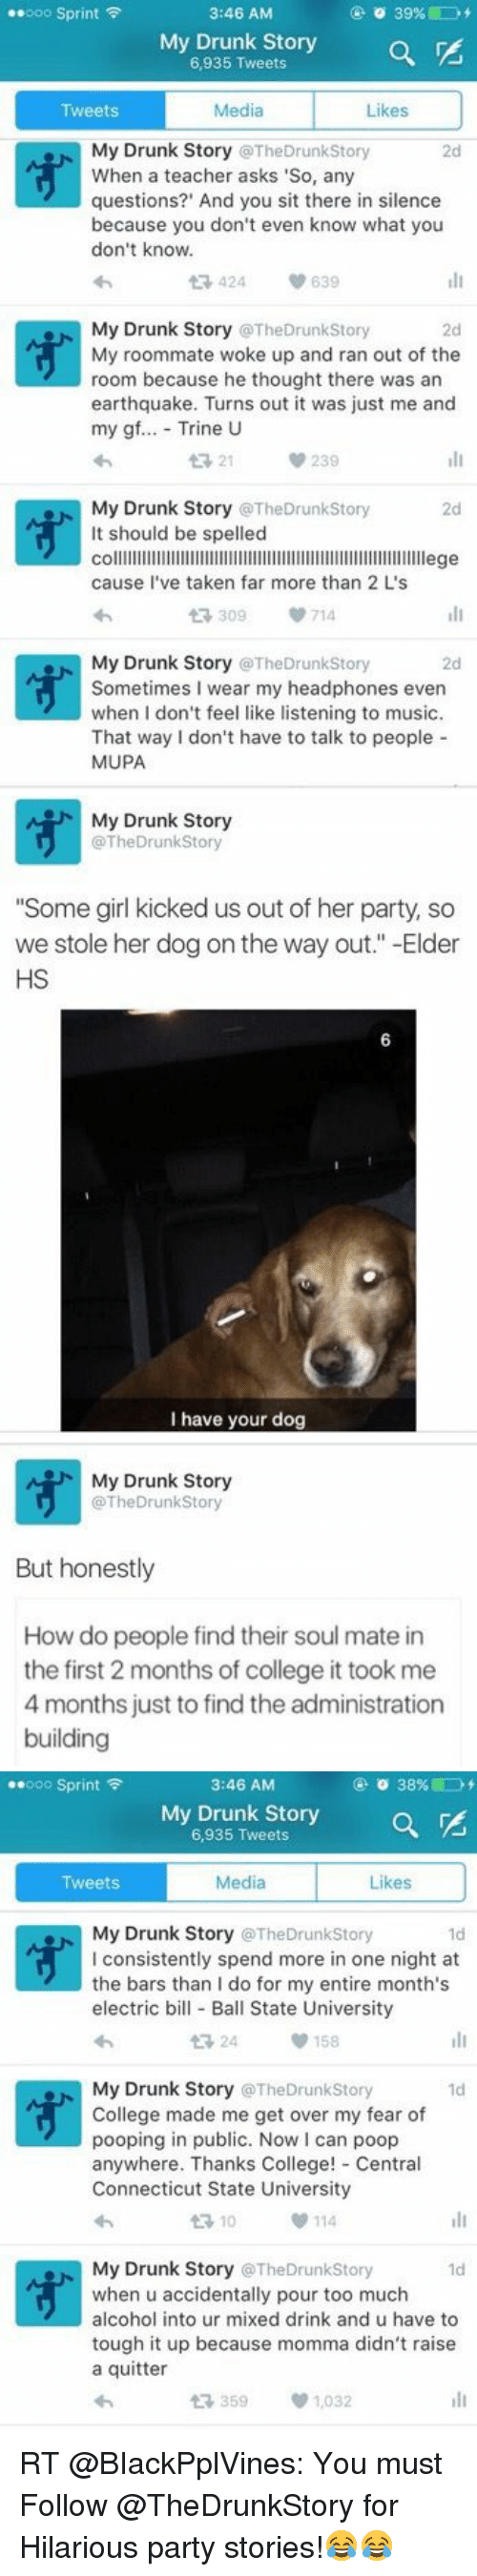 """College, Drunk, and Memes: ooo Sprint  F  o 39%  3:46 AM  My 6,935 Tweets  Drunk Story  Media  Tweets  Likes  My Drunk Story  TheDrunkstory  When a teacher asks 'So, any  questions?' And you sit there in silence  because you don't even know what you  don't know.  t 424 v 639  My Drunk Story  @The Drunk Story  2d  My roommate woke up and ran out of the  room because he thought there was an  earthquake. Turns out it was just me and  my gf.  Trine U  v 239  21  My Drunk Story TheDrunk story  2d  It should be spelled  colllllllllllllllllllllllllllllllllllllllllllllllllllllllllllllllllege  cause I've taken far more than 2 L's  t 309  V 714  My Drunk Story  TheDrunkstory  2d  Sometimes wear my headphones even  when don't feel like listening to music.  That way I don't have to talk to people  MUPA   My Drunk Story  @The DrunkStory  """"Some girl kicked us out of her party, so  we stole her dog on the way out."""" -Elder  HS  I have your dog   My Drunk Story  @The Drunkstory  But honestly  How do people find their soul mate in  the first 2 months of college it took me  4 months just to find theadministration  building   ooo Sprint  F  o 38% GD  3:46 AM  My Drunk Story  6,935 Tweets  Likes  Tweets  Media  My Drunk Story  The Drunkstory  l consistently spend more in one night at  the bars than I do for my entire month's  electric bill Ball State University  t 24  158  My Drunk Story  @TheDrunkstory  1d  College made me get over my fear of  pooping in public. Now I can poop  anywhere. Thanks College  Centra  Connecticut State University  114  My Drunk Story  @TheDrunkstory  when u accidentally pour too much  alcohol into ur mixed drink and u have to  tough it up because momma didn't raise  a quitter  t 359  1,032 RT @BIackPplVines: You must Follow @TheDrunkStory for Hilarious party stories!😂😂"""